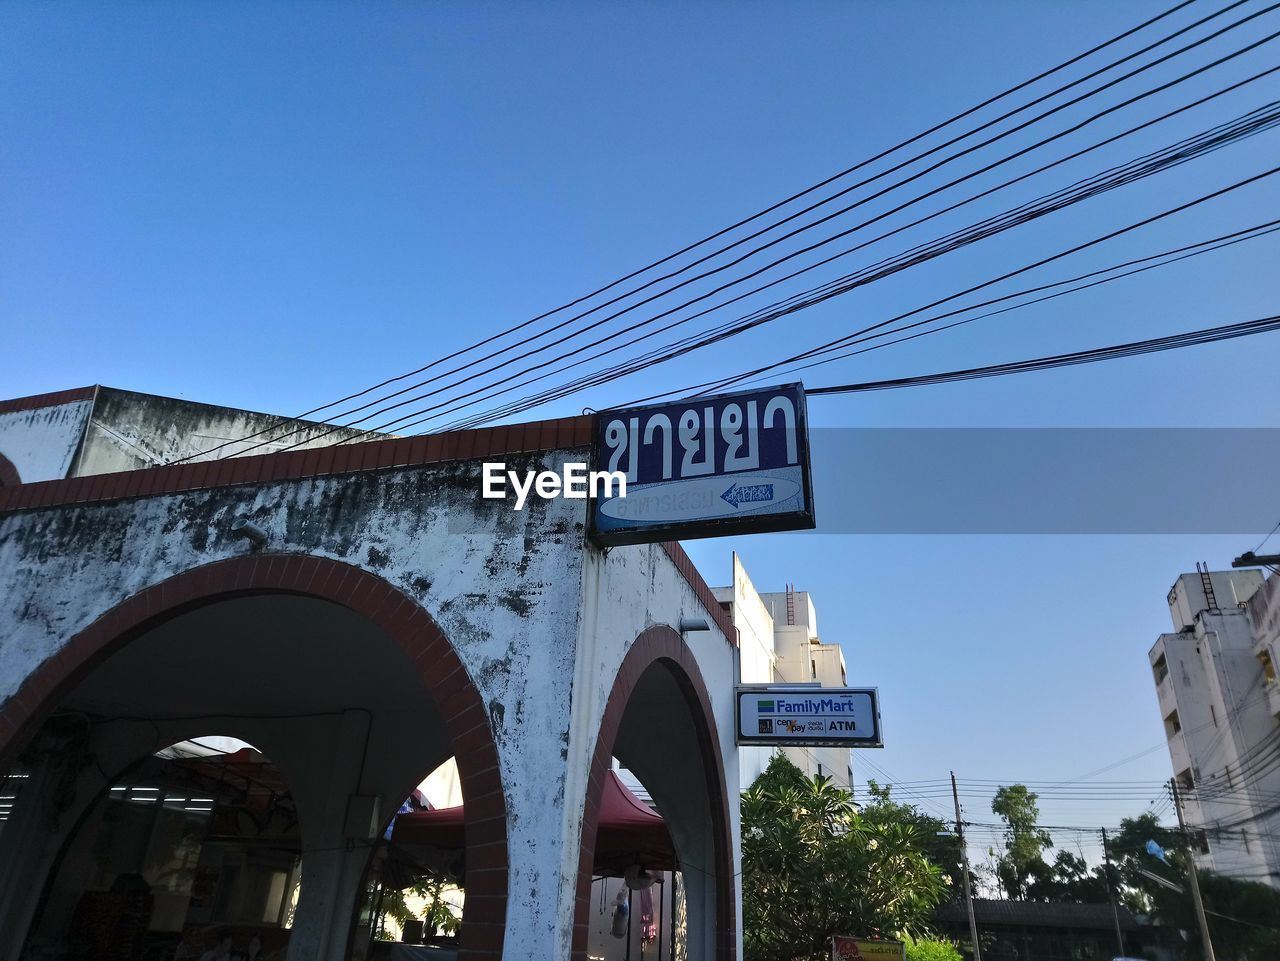 sky, architecture, low angle view, sign, built structure, communication, text, connection, nature, clear sky, building exterior, cable, blue, day, western script, information, no people, tree, information sign, city, outdoors, guidance, electricity